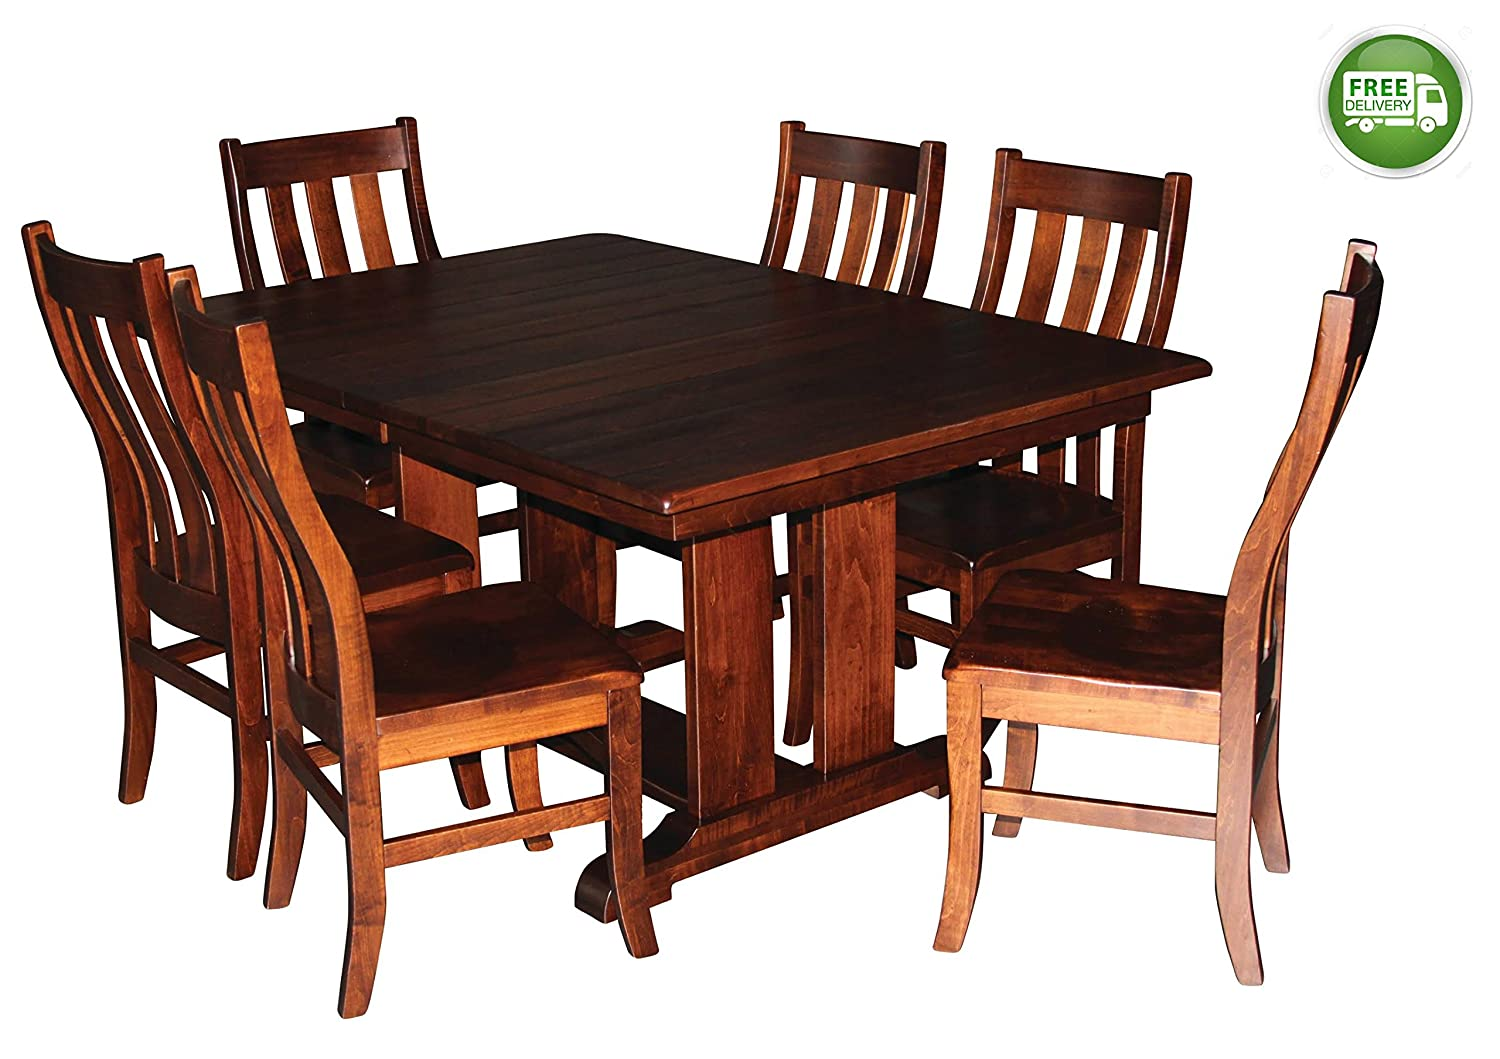 amazoncom aspen tree interiors solid wood heirloom 9 piece dining room kitchen table set get ready for the holidays and generations to come made in